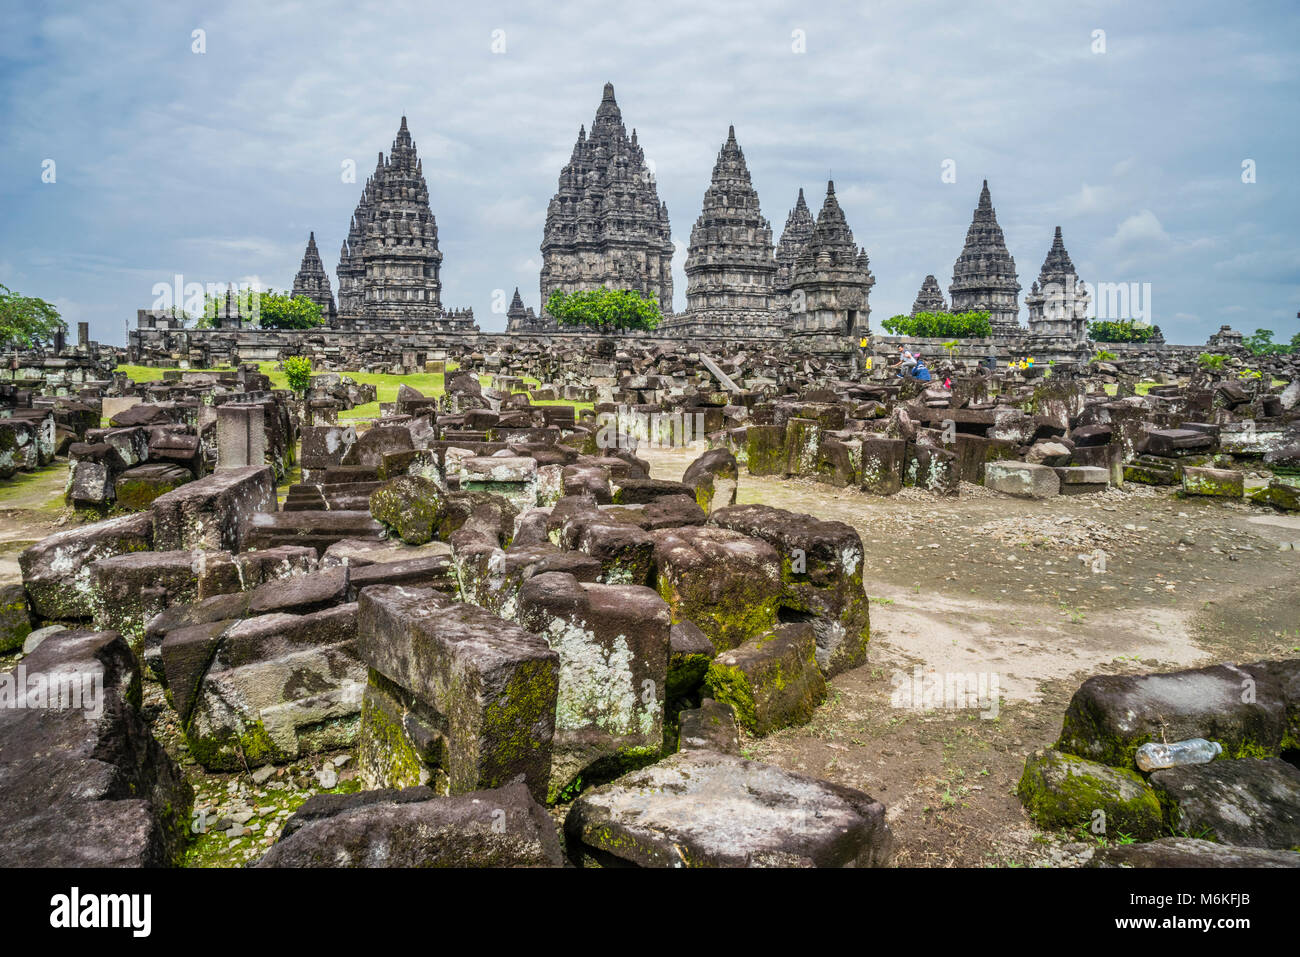 Indonesia, Central Java, scattered masonry in the outer compounds of the mid-9th century Prambanan Hindu Temple - Stock Image